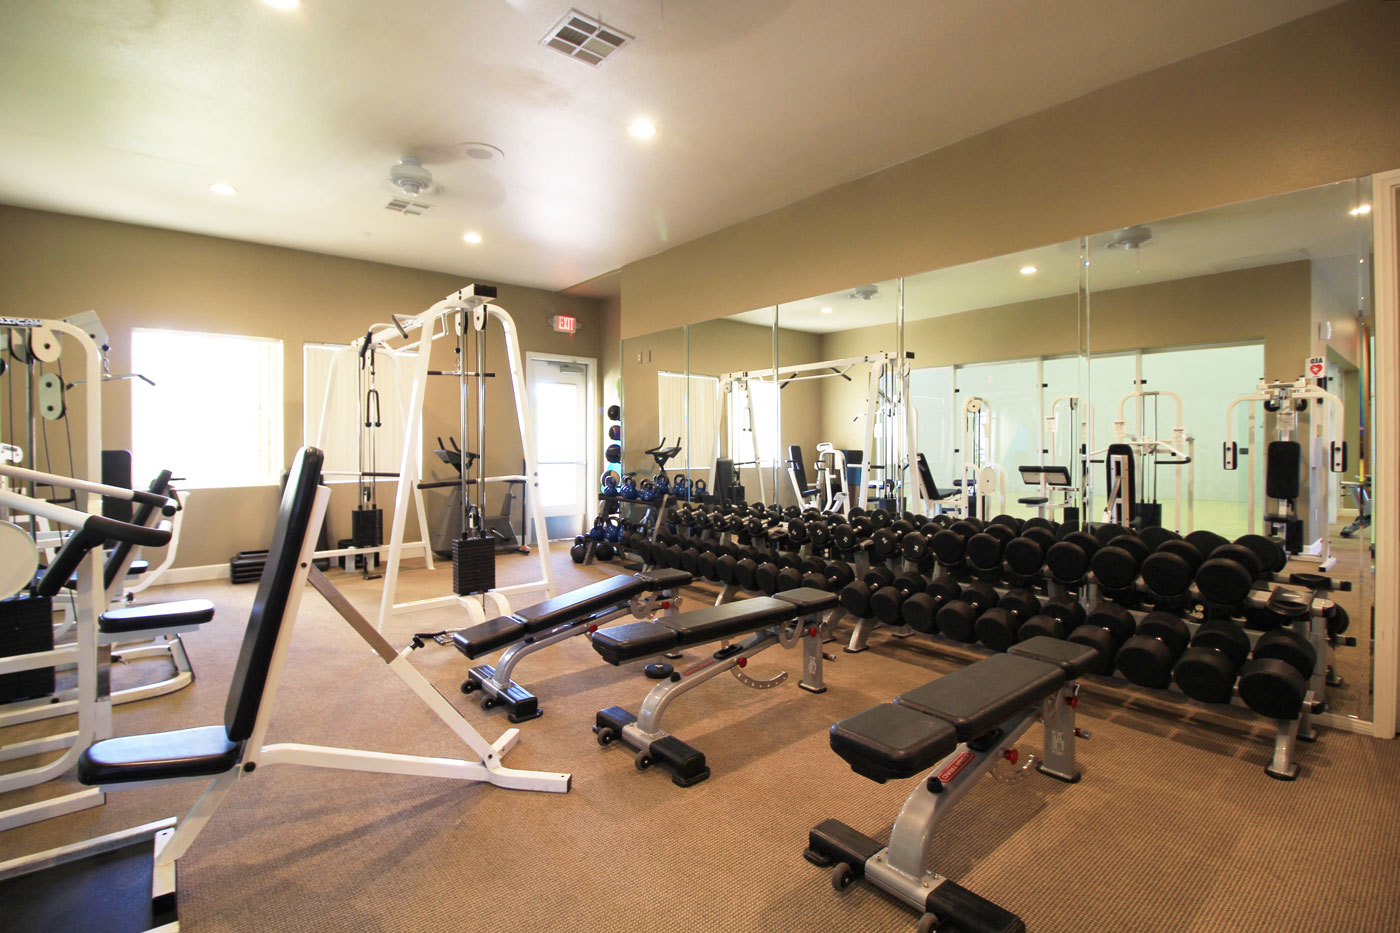 Large gym with mirrored wall and gym equipment.